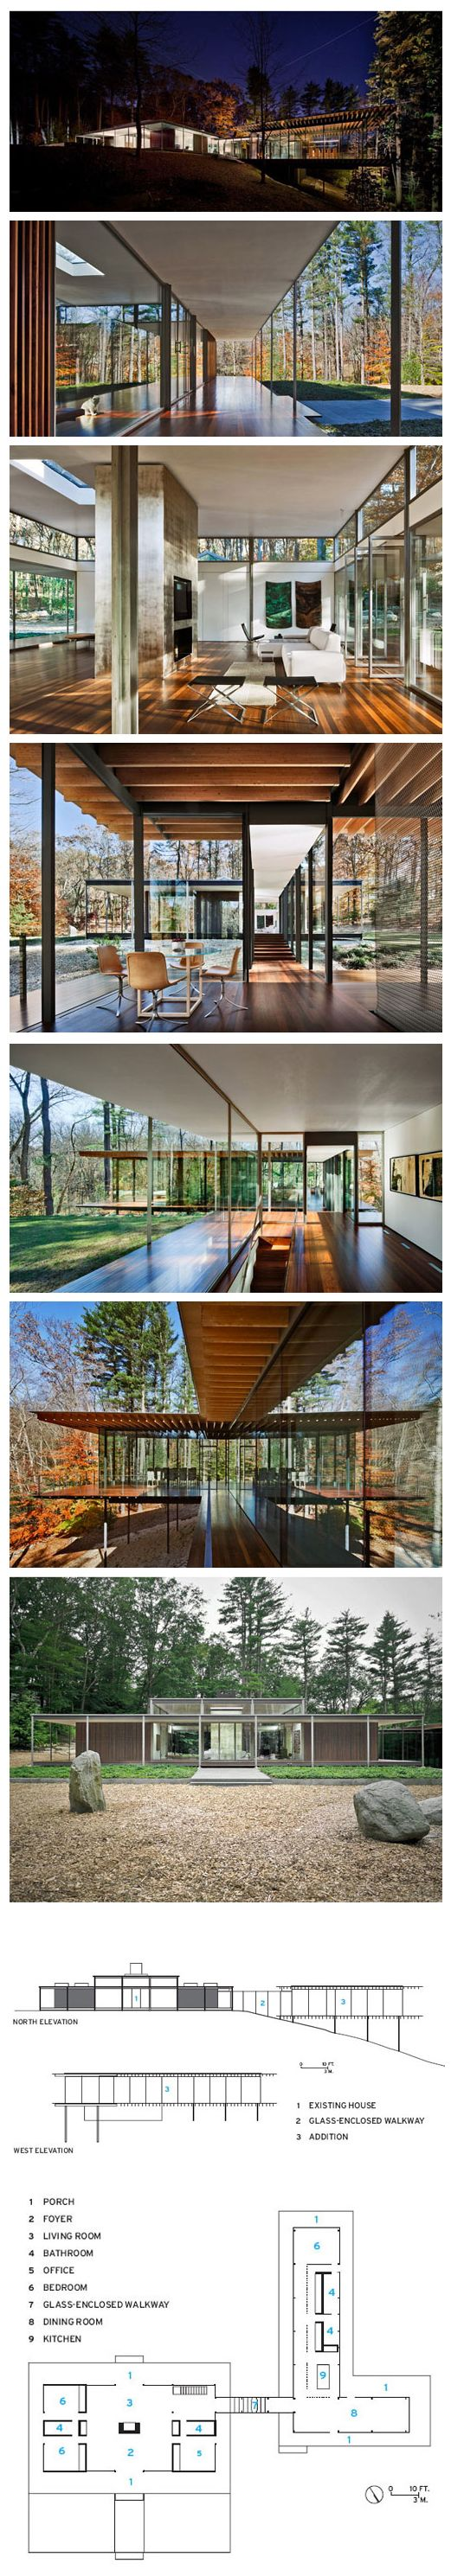 Glass/Wood House, New Canaan, Connecticut, designed by Kengo Kuma & Associates (via Daily Icon).